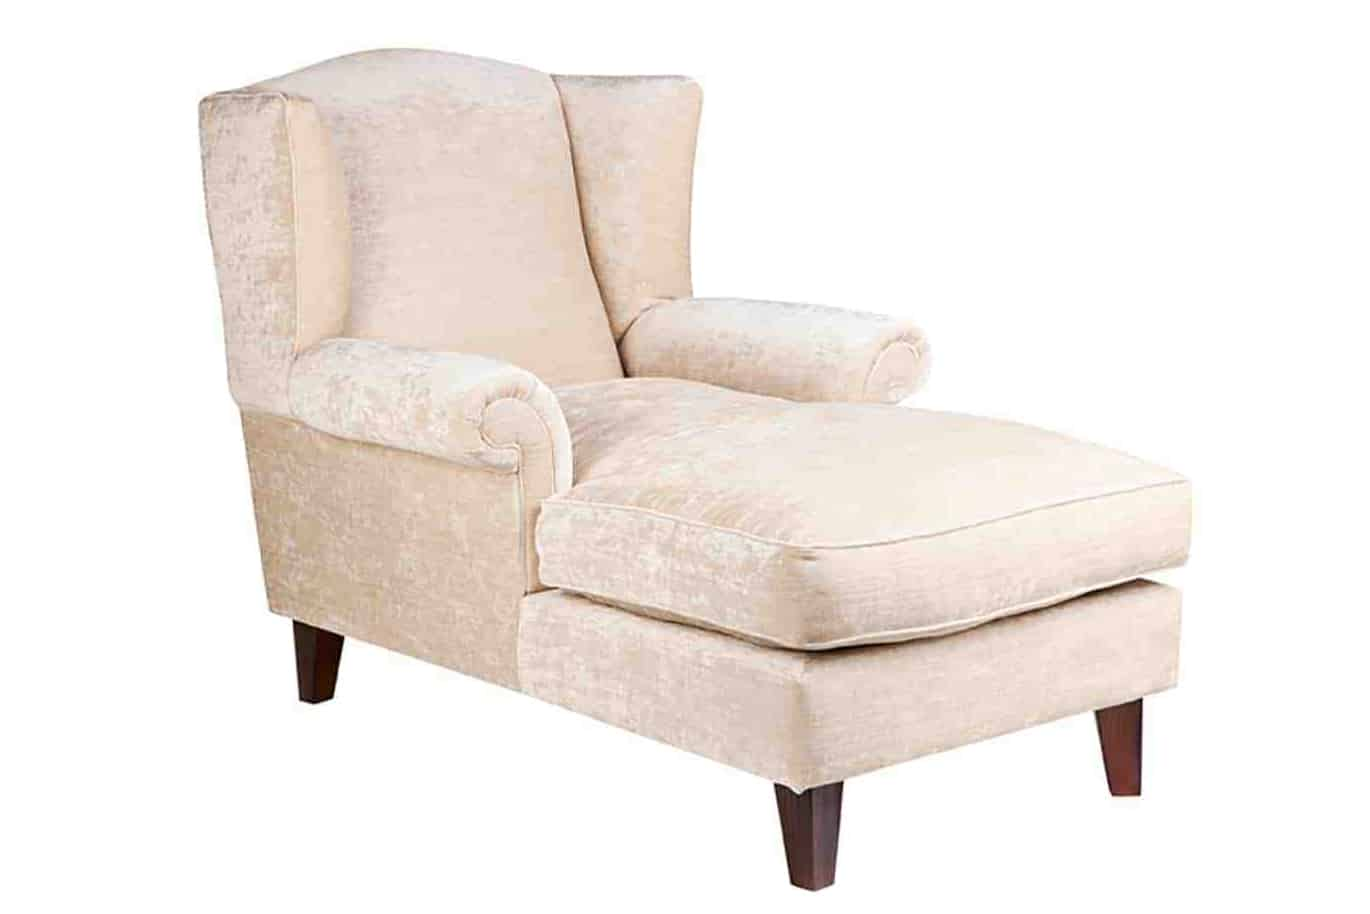 flora_wing_chaise-_lounge_01 Australian Made Designer Accent Boutique Occasional Chair Warwick Fabric